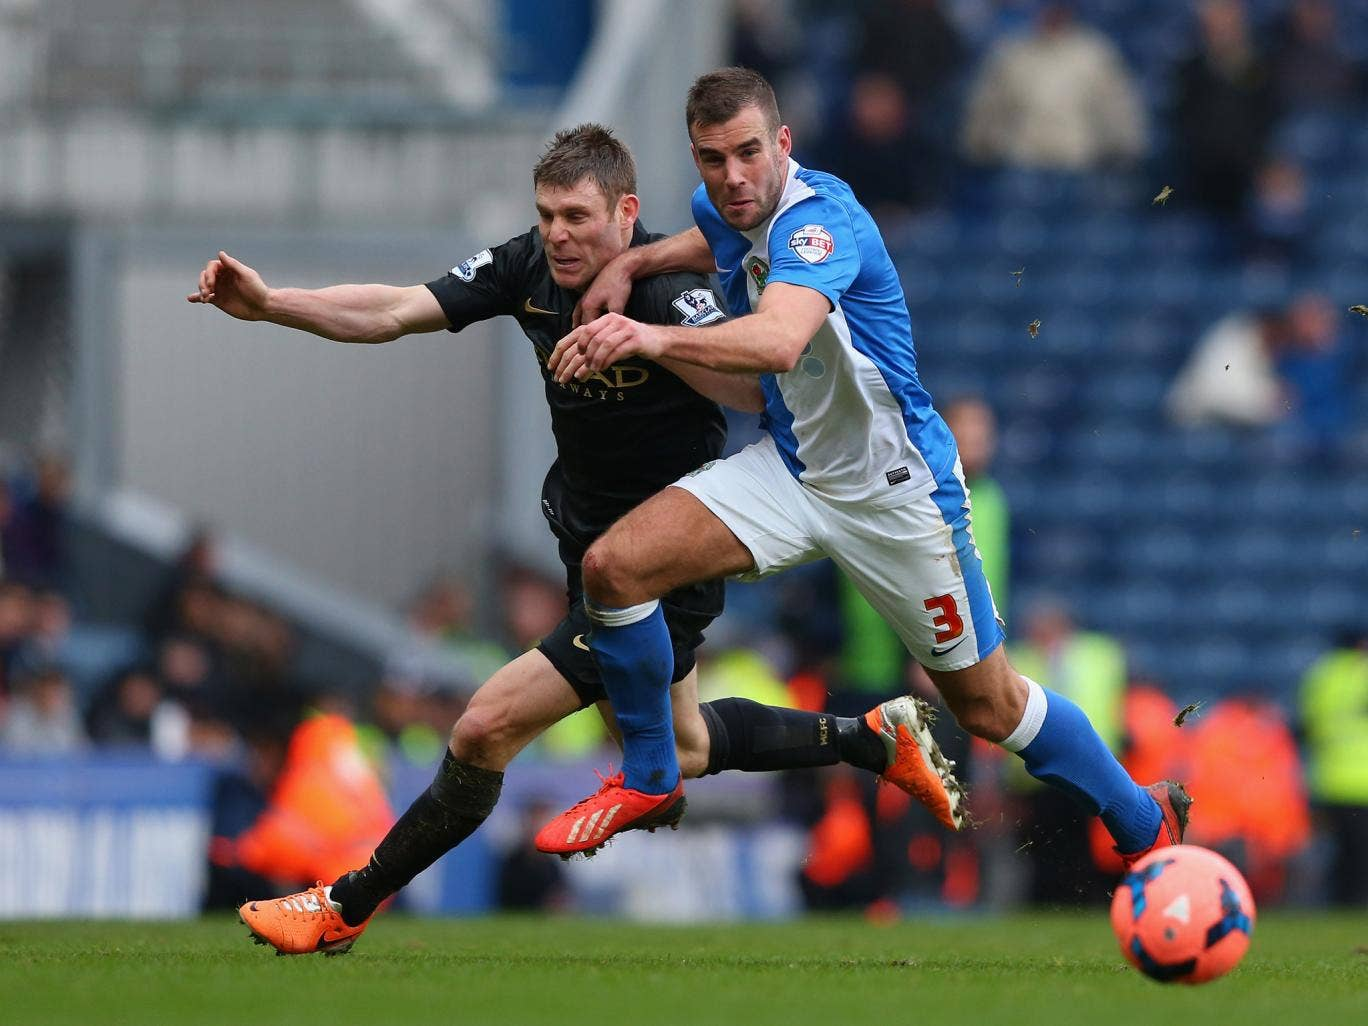 Tommy Spurr of Blackburn Rovers competes with James Milner of Manchester City